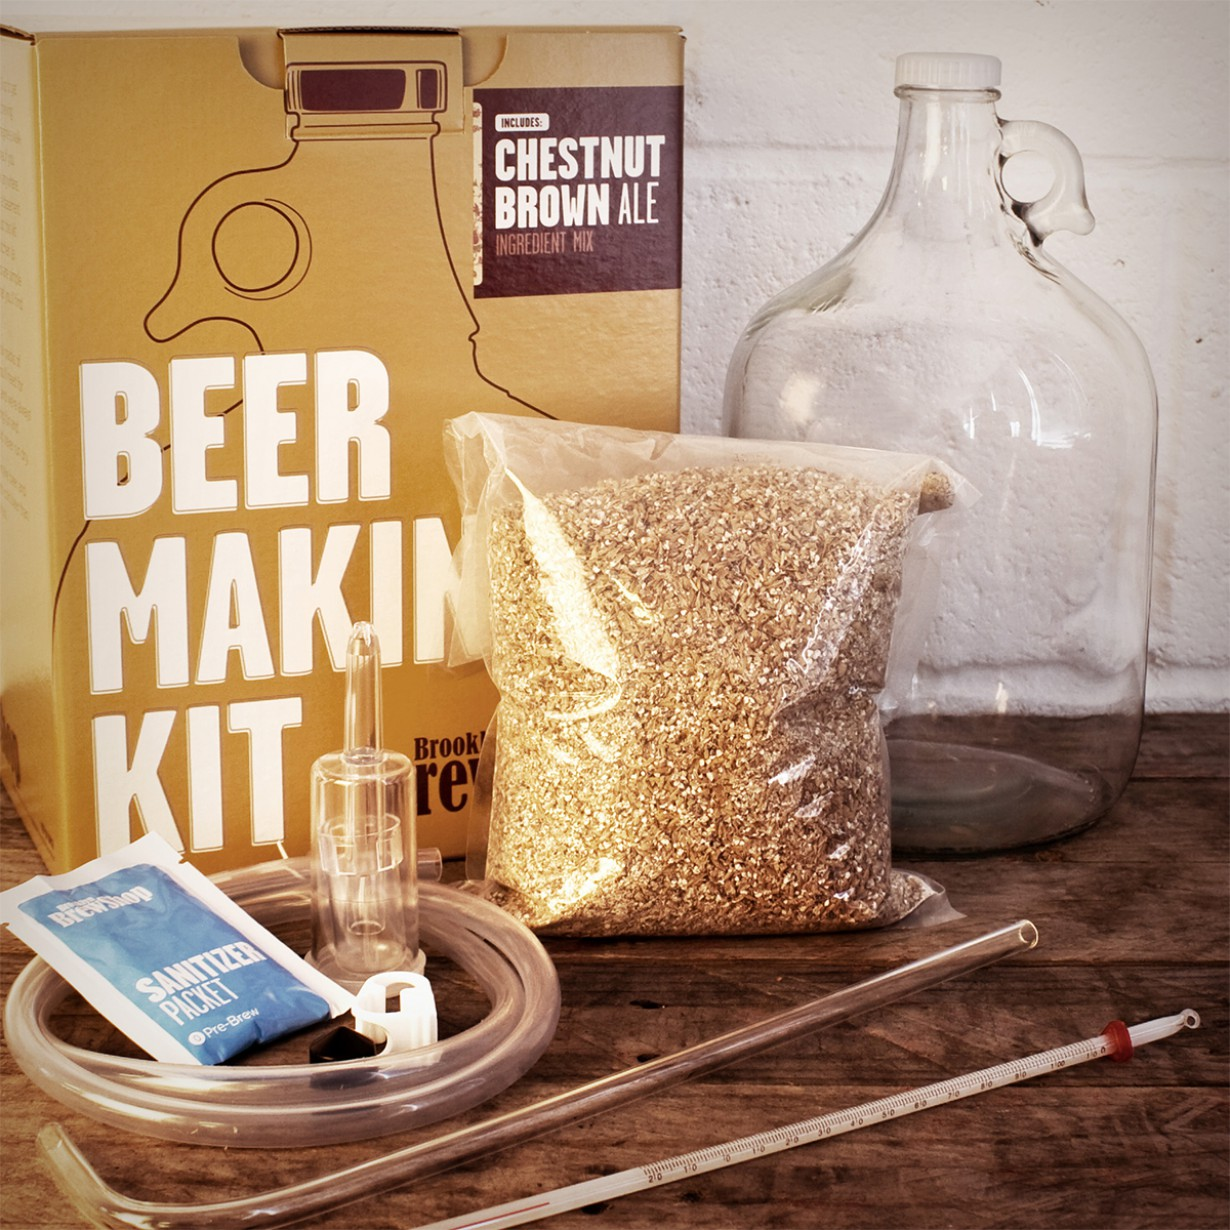 kit-per-fare-la-propria-birra-brooklyn-brew-boutique-c8d